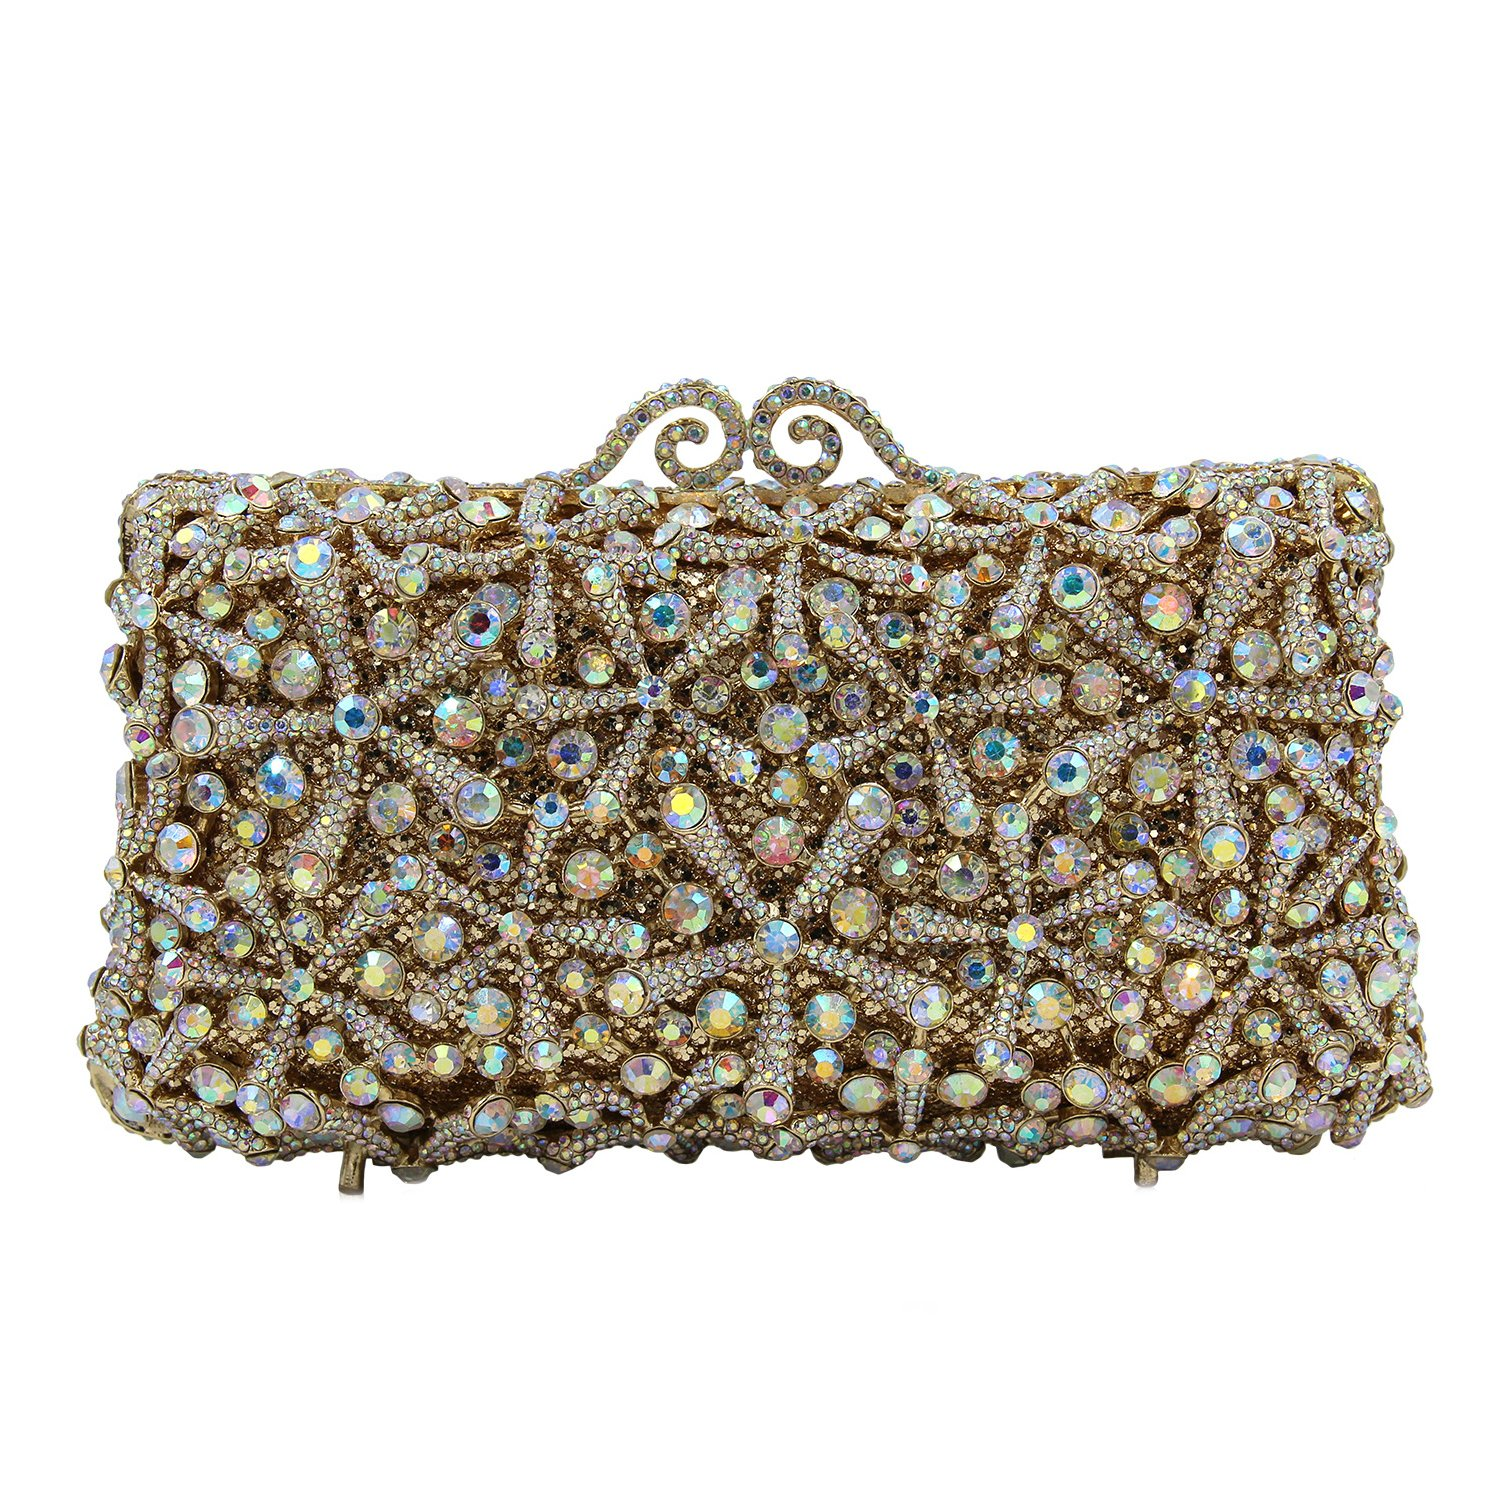 Flada Rhinestones Evening Bag Wedding Party Handbag Clutch Purse for Womens A-Gold by Flada